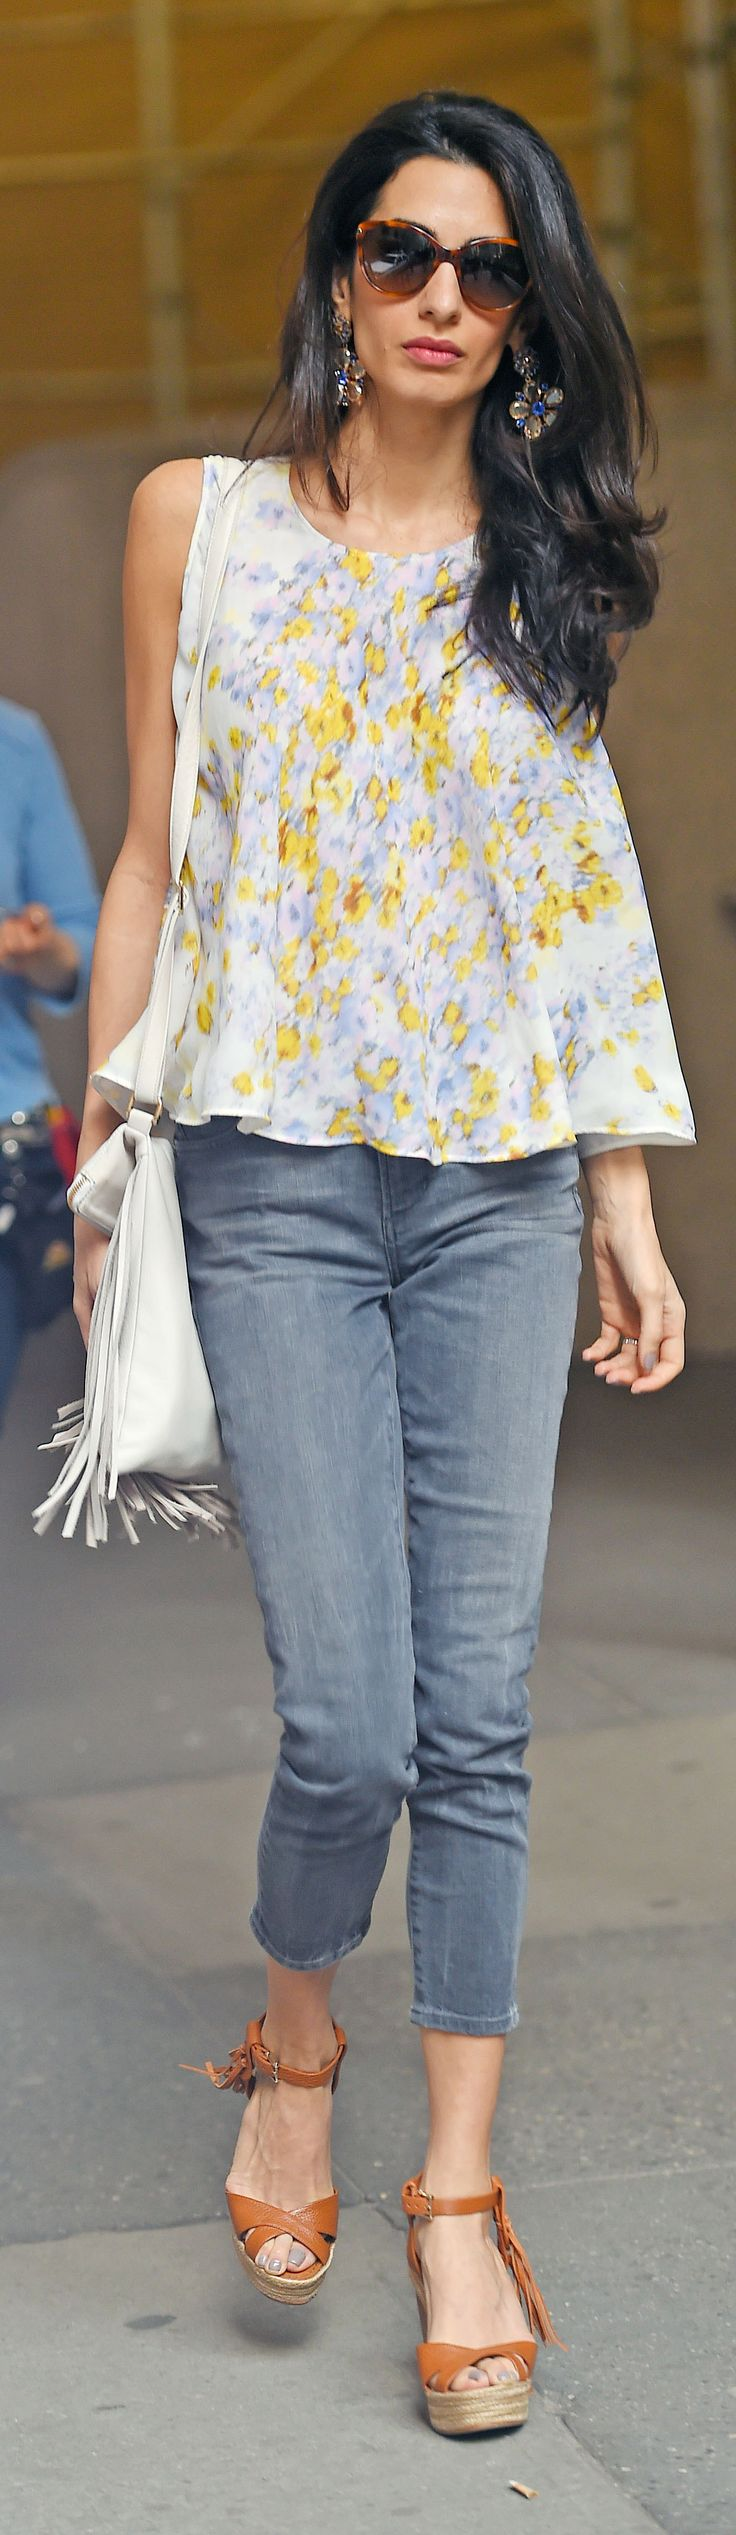 Amal Clooney wearing a Giambattista Valli top, Valentino wedges, and Dolce & Gabbana earrings on the streets of NYC.